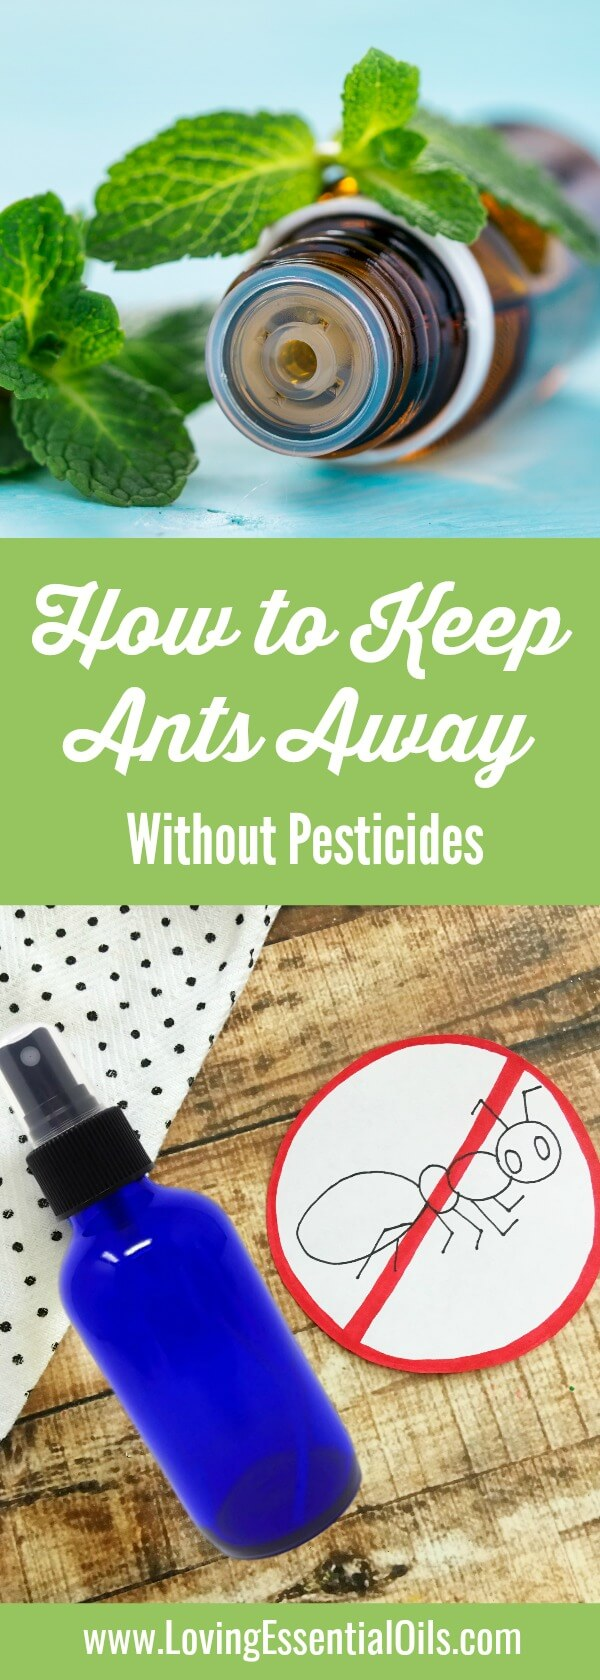 How to Keep Ants Away Without Pesticides Using Peppermit Essential Oil by Loving Essential Oils